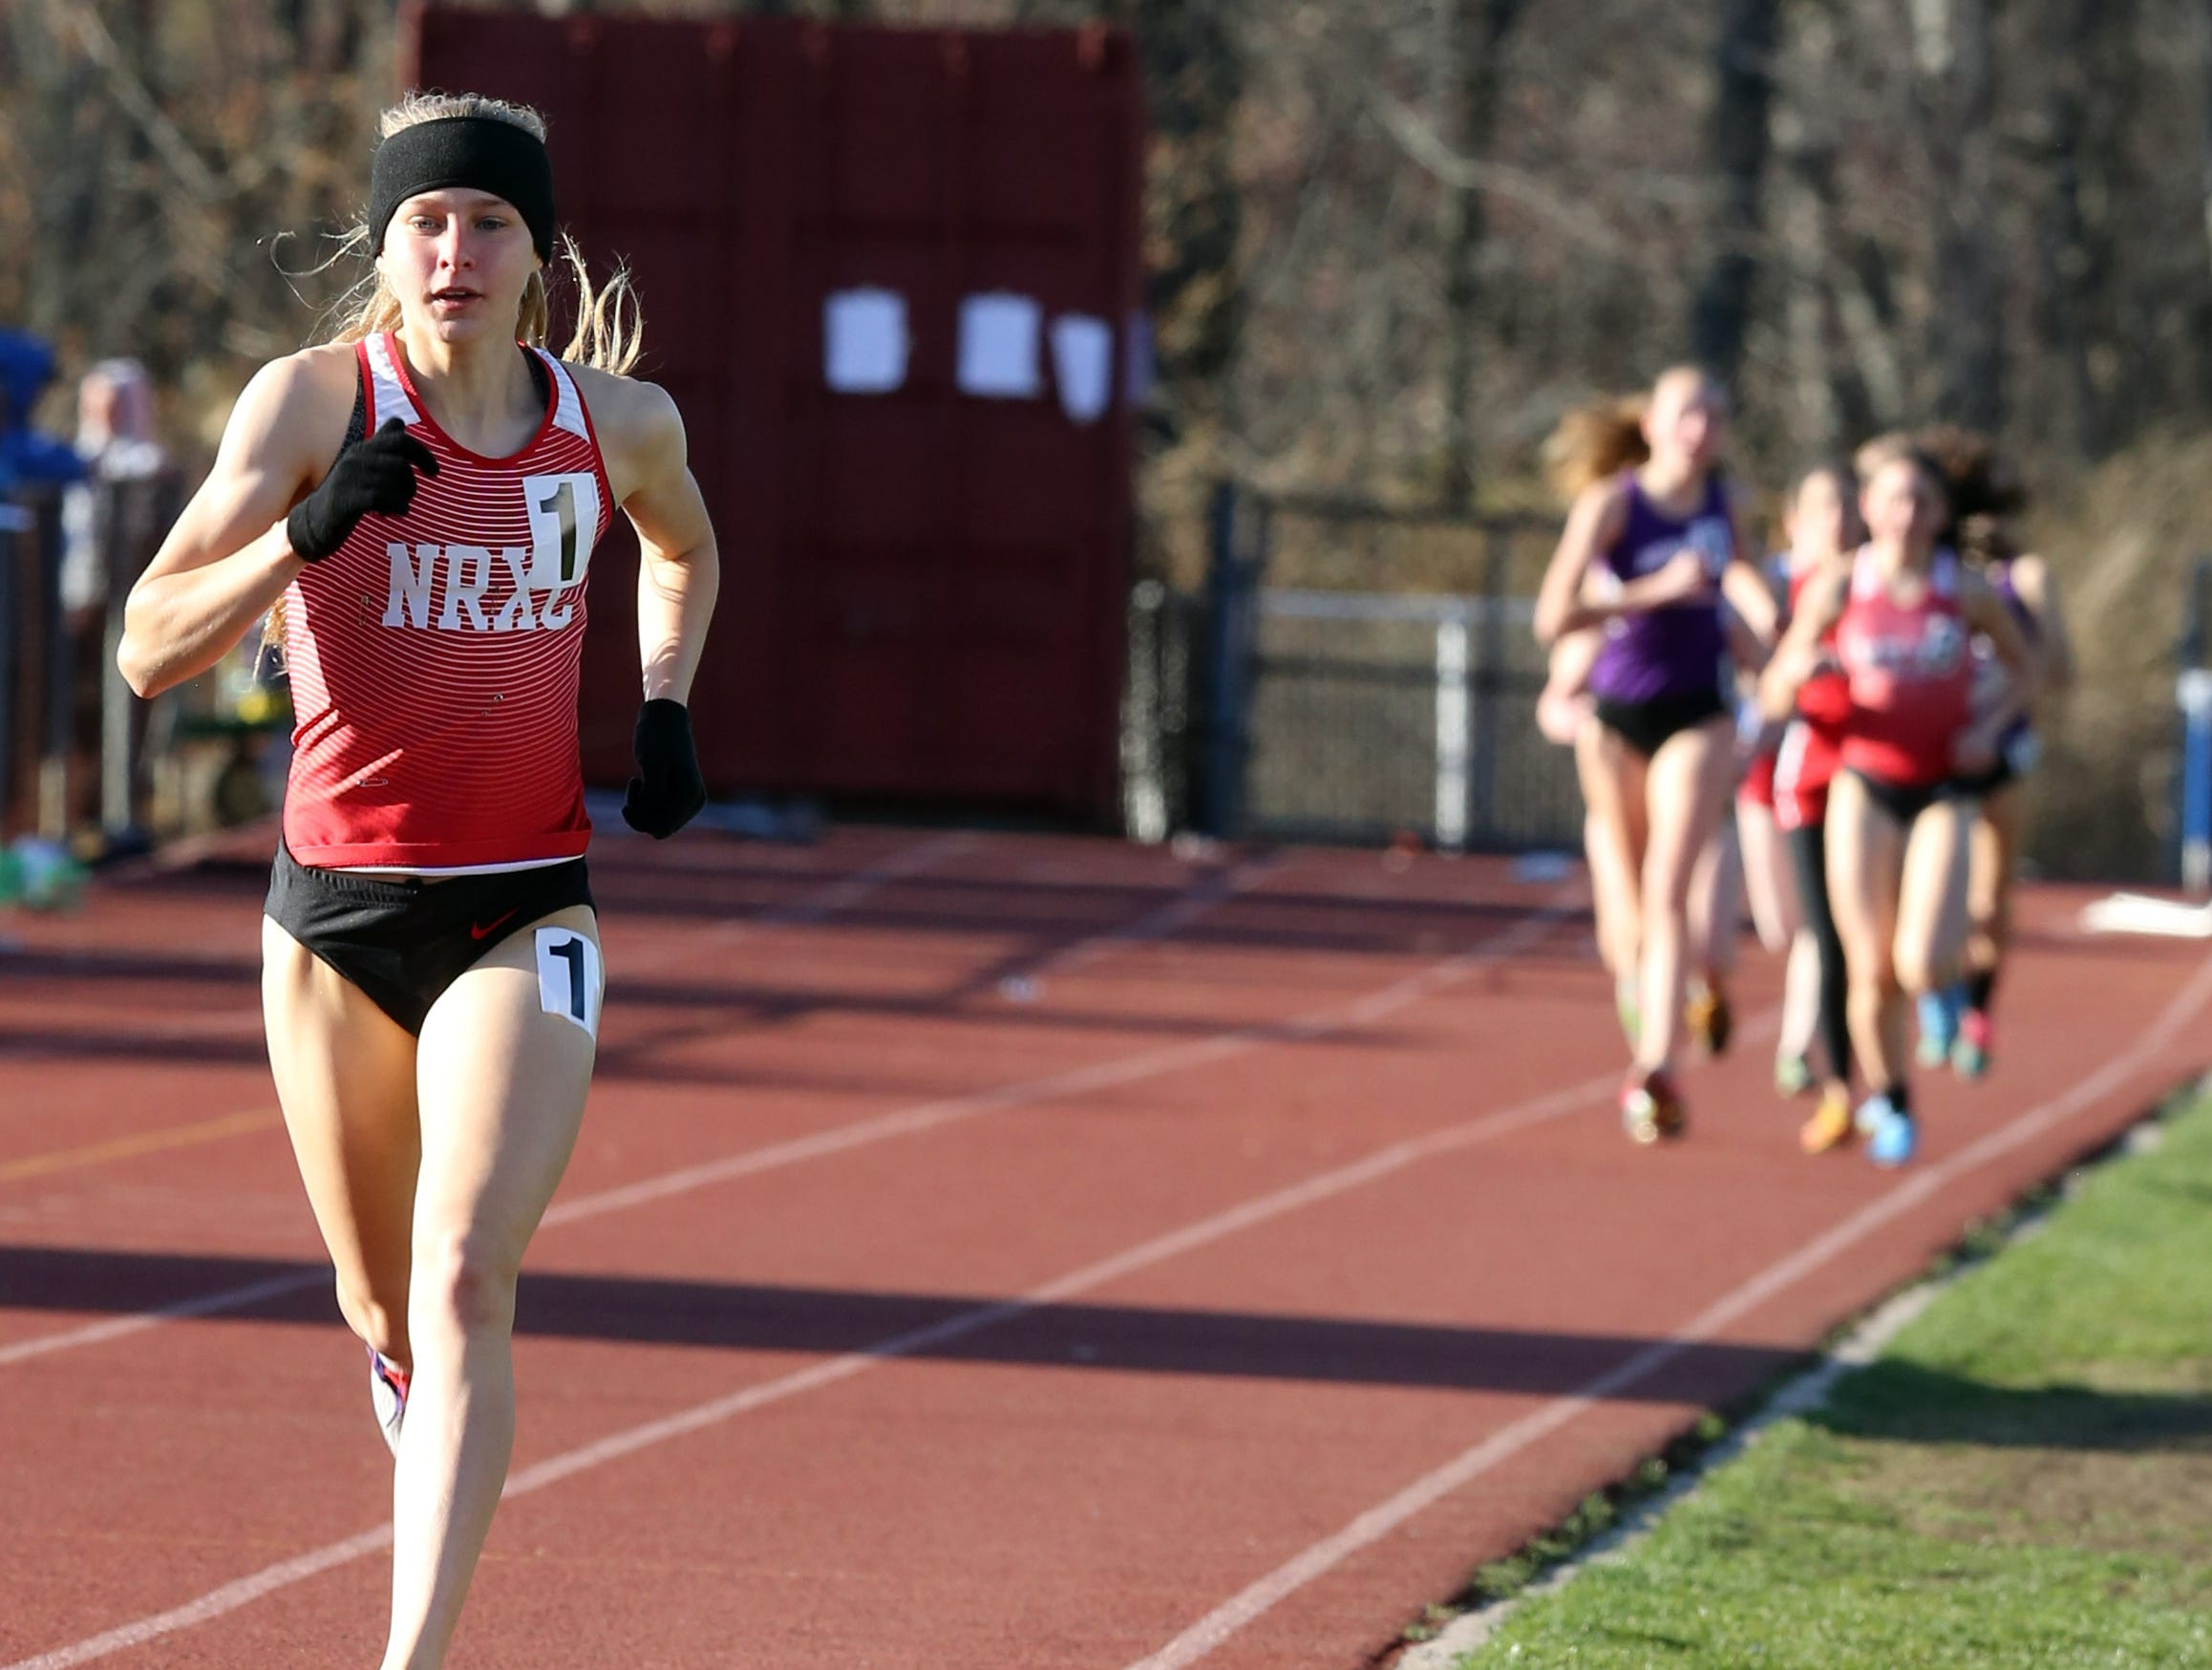 Katelyn Tuohy runs in the 3200 meter race on the first day of the two-day Red Raider Relays at North Rockland High School on April 20, 2018.